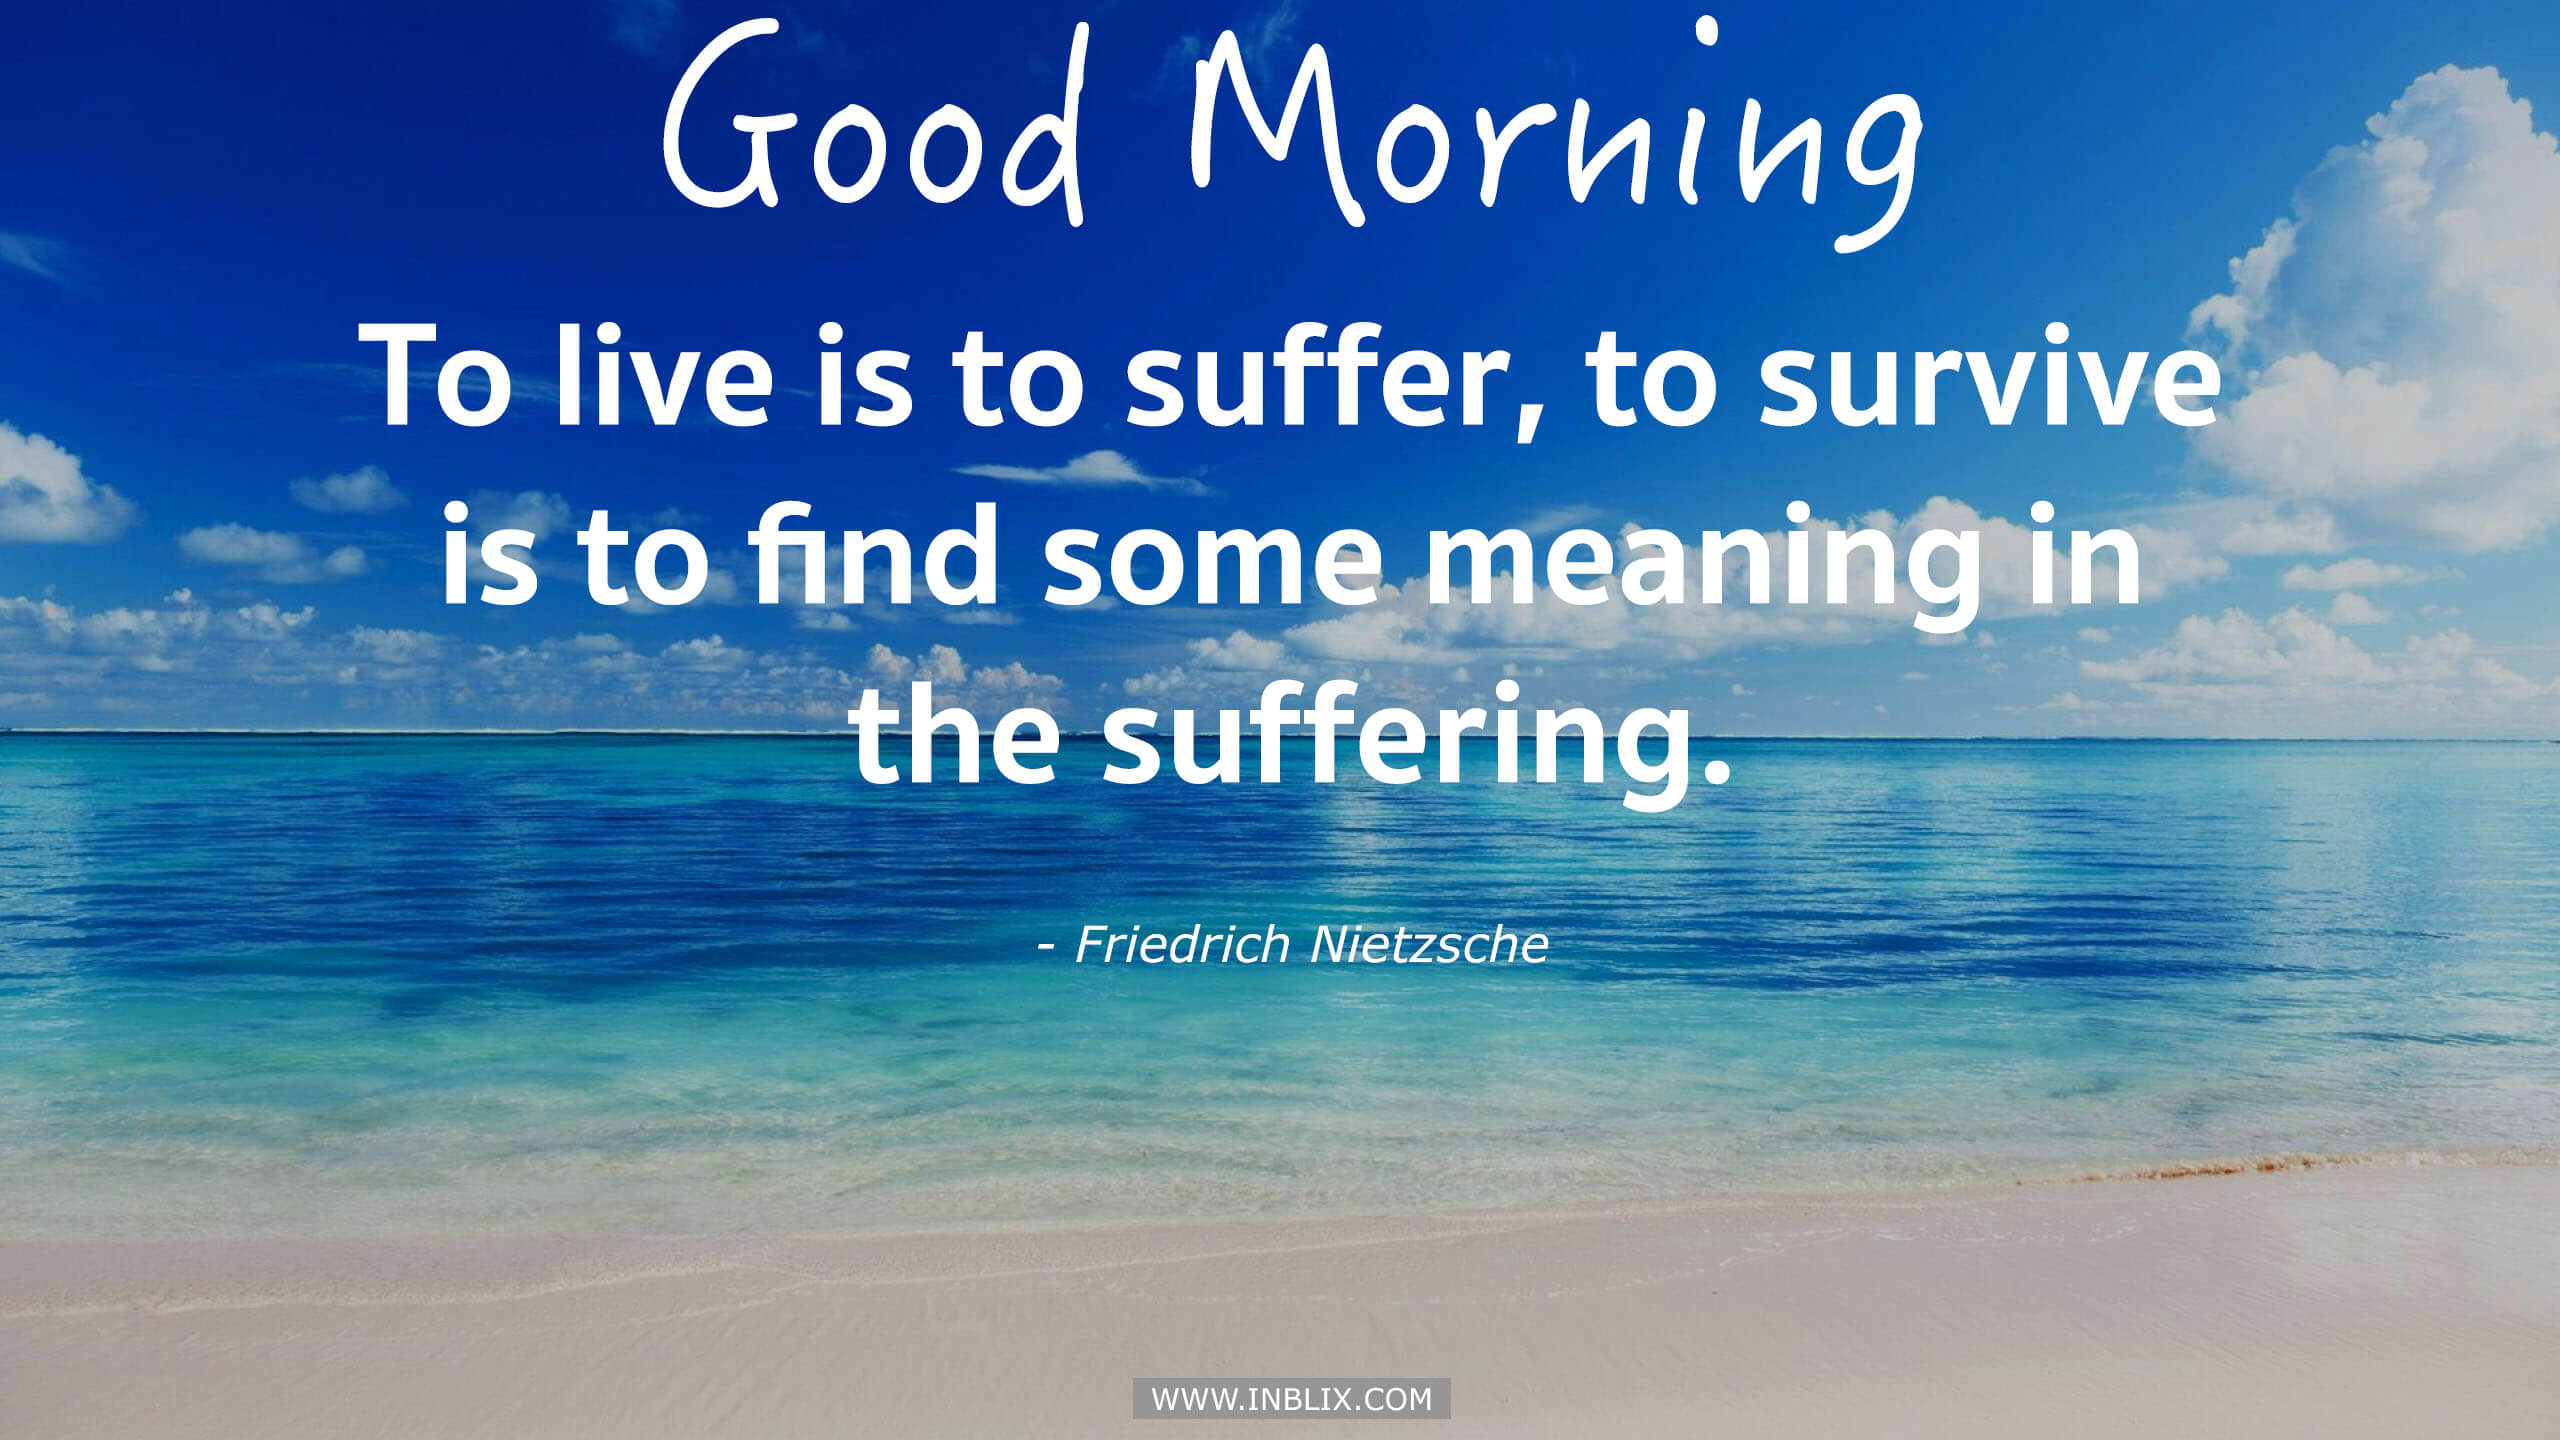 To live is to suffer, to survive is to find some meaning in the suffering.